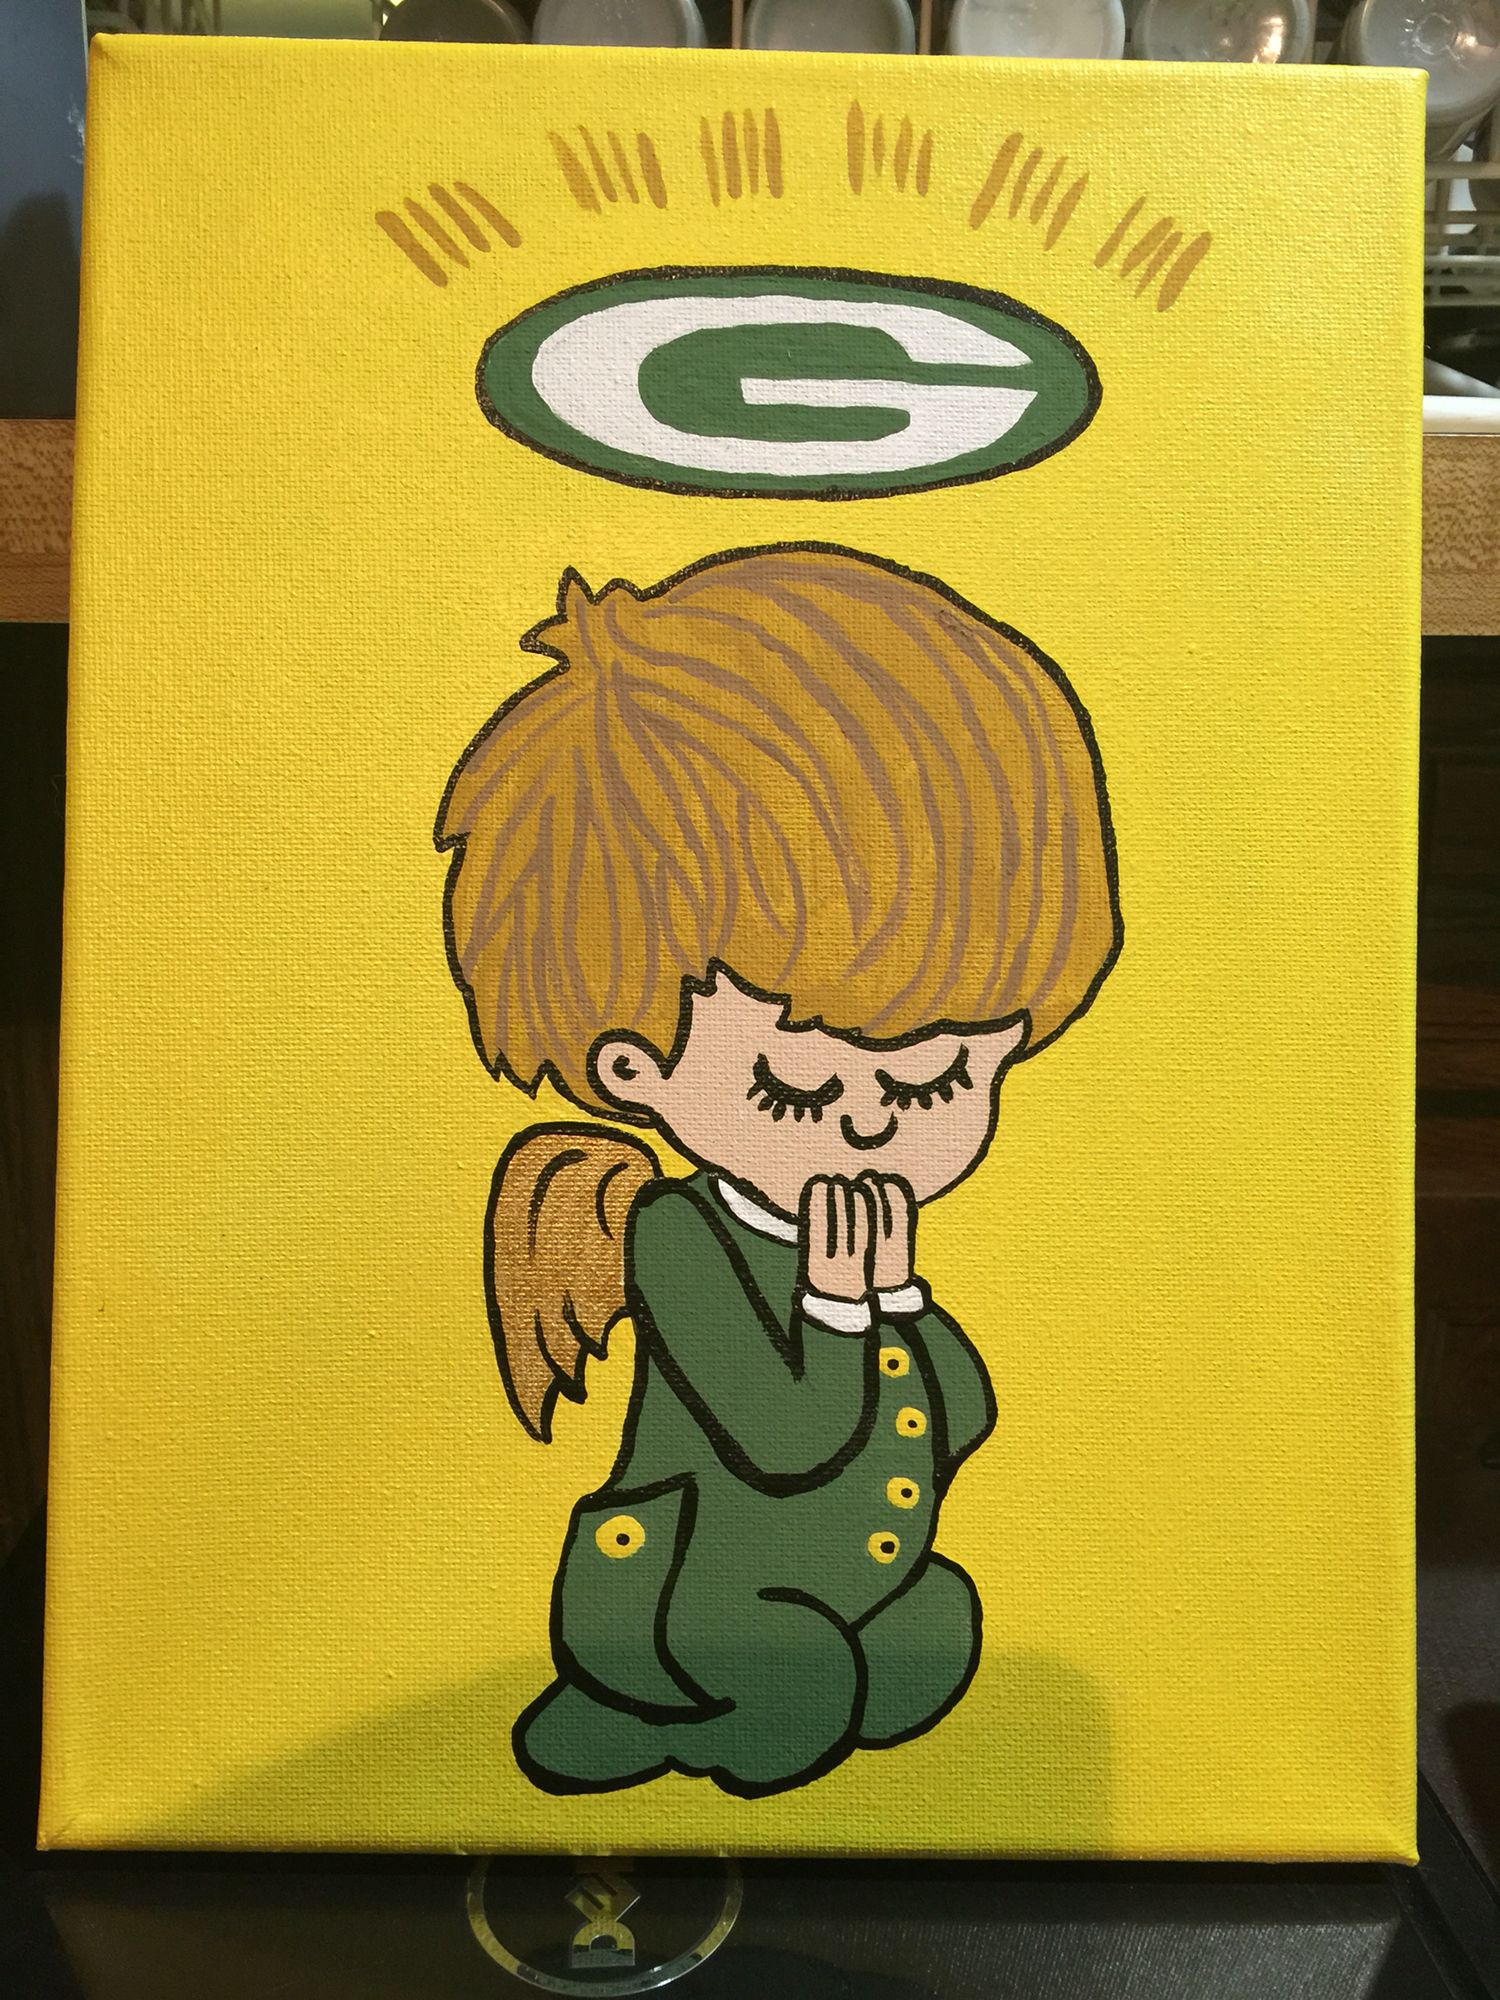 Praying Packer Angel Green Bay Packers Green Bay Packers